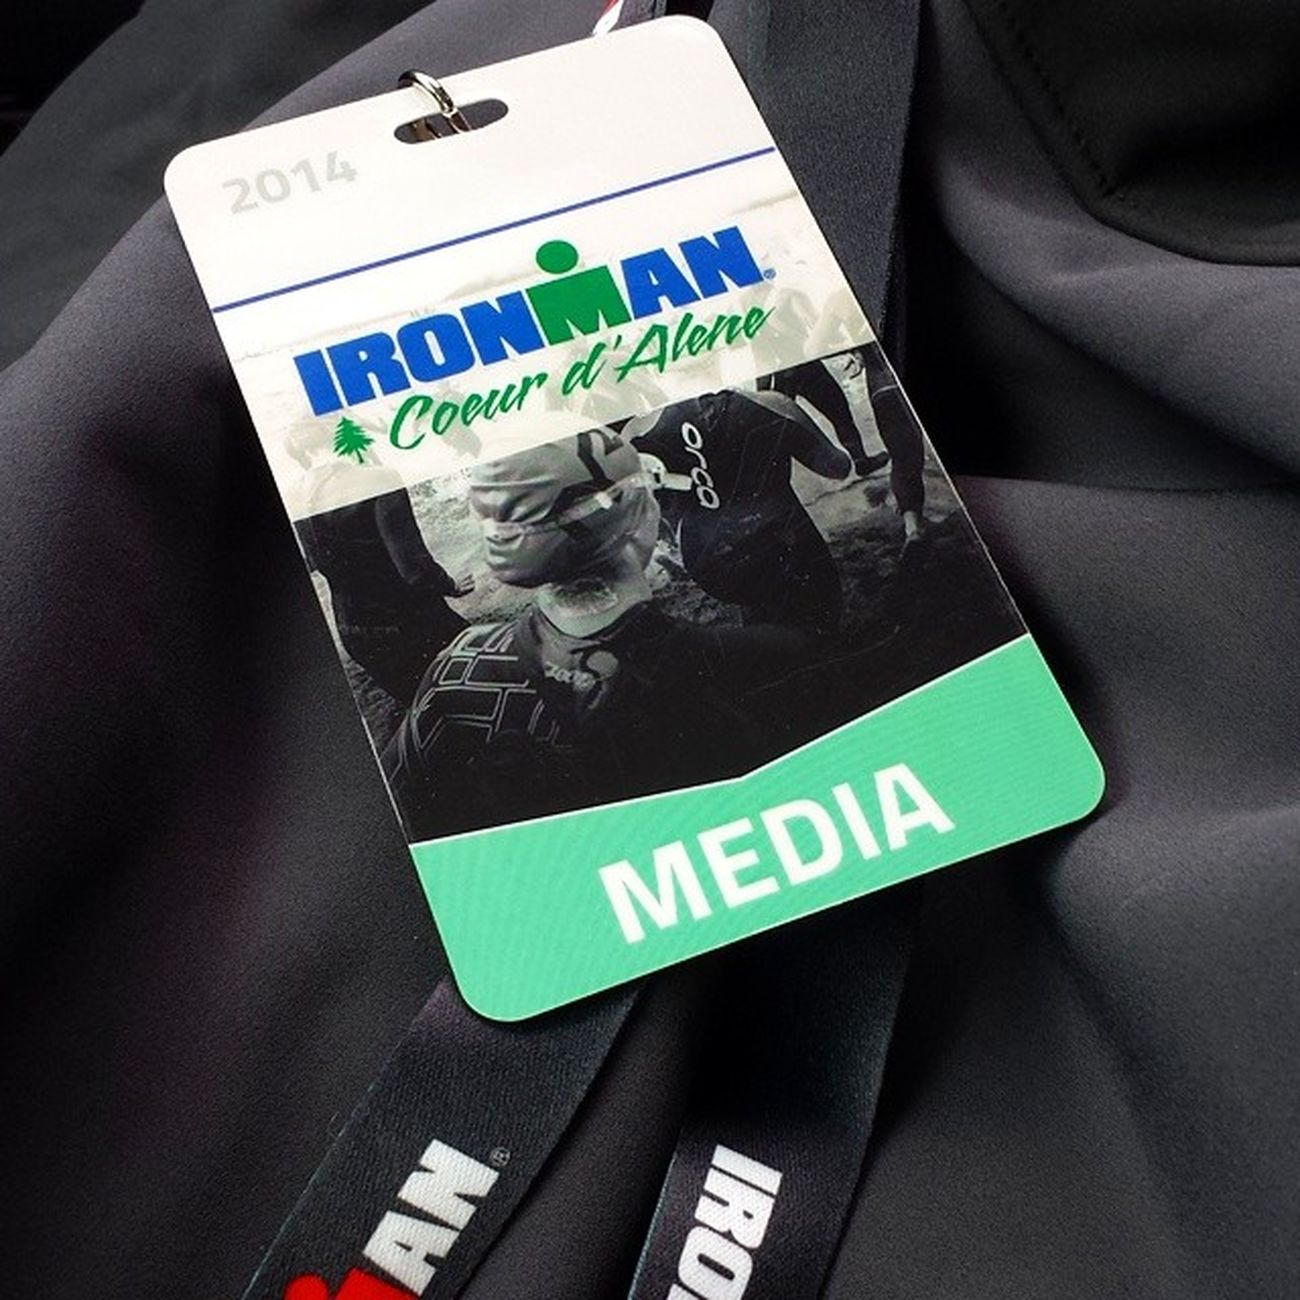 Not as cool as Competing but following an Athlete this weekend Shooting feature Footage  picked up our Credentials Ironman Coeurdalene 2014 ToesInTheSandProductions